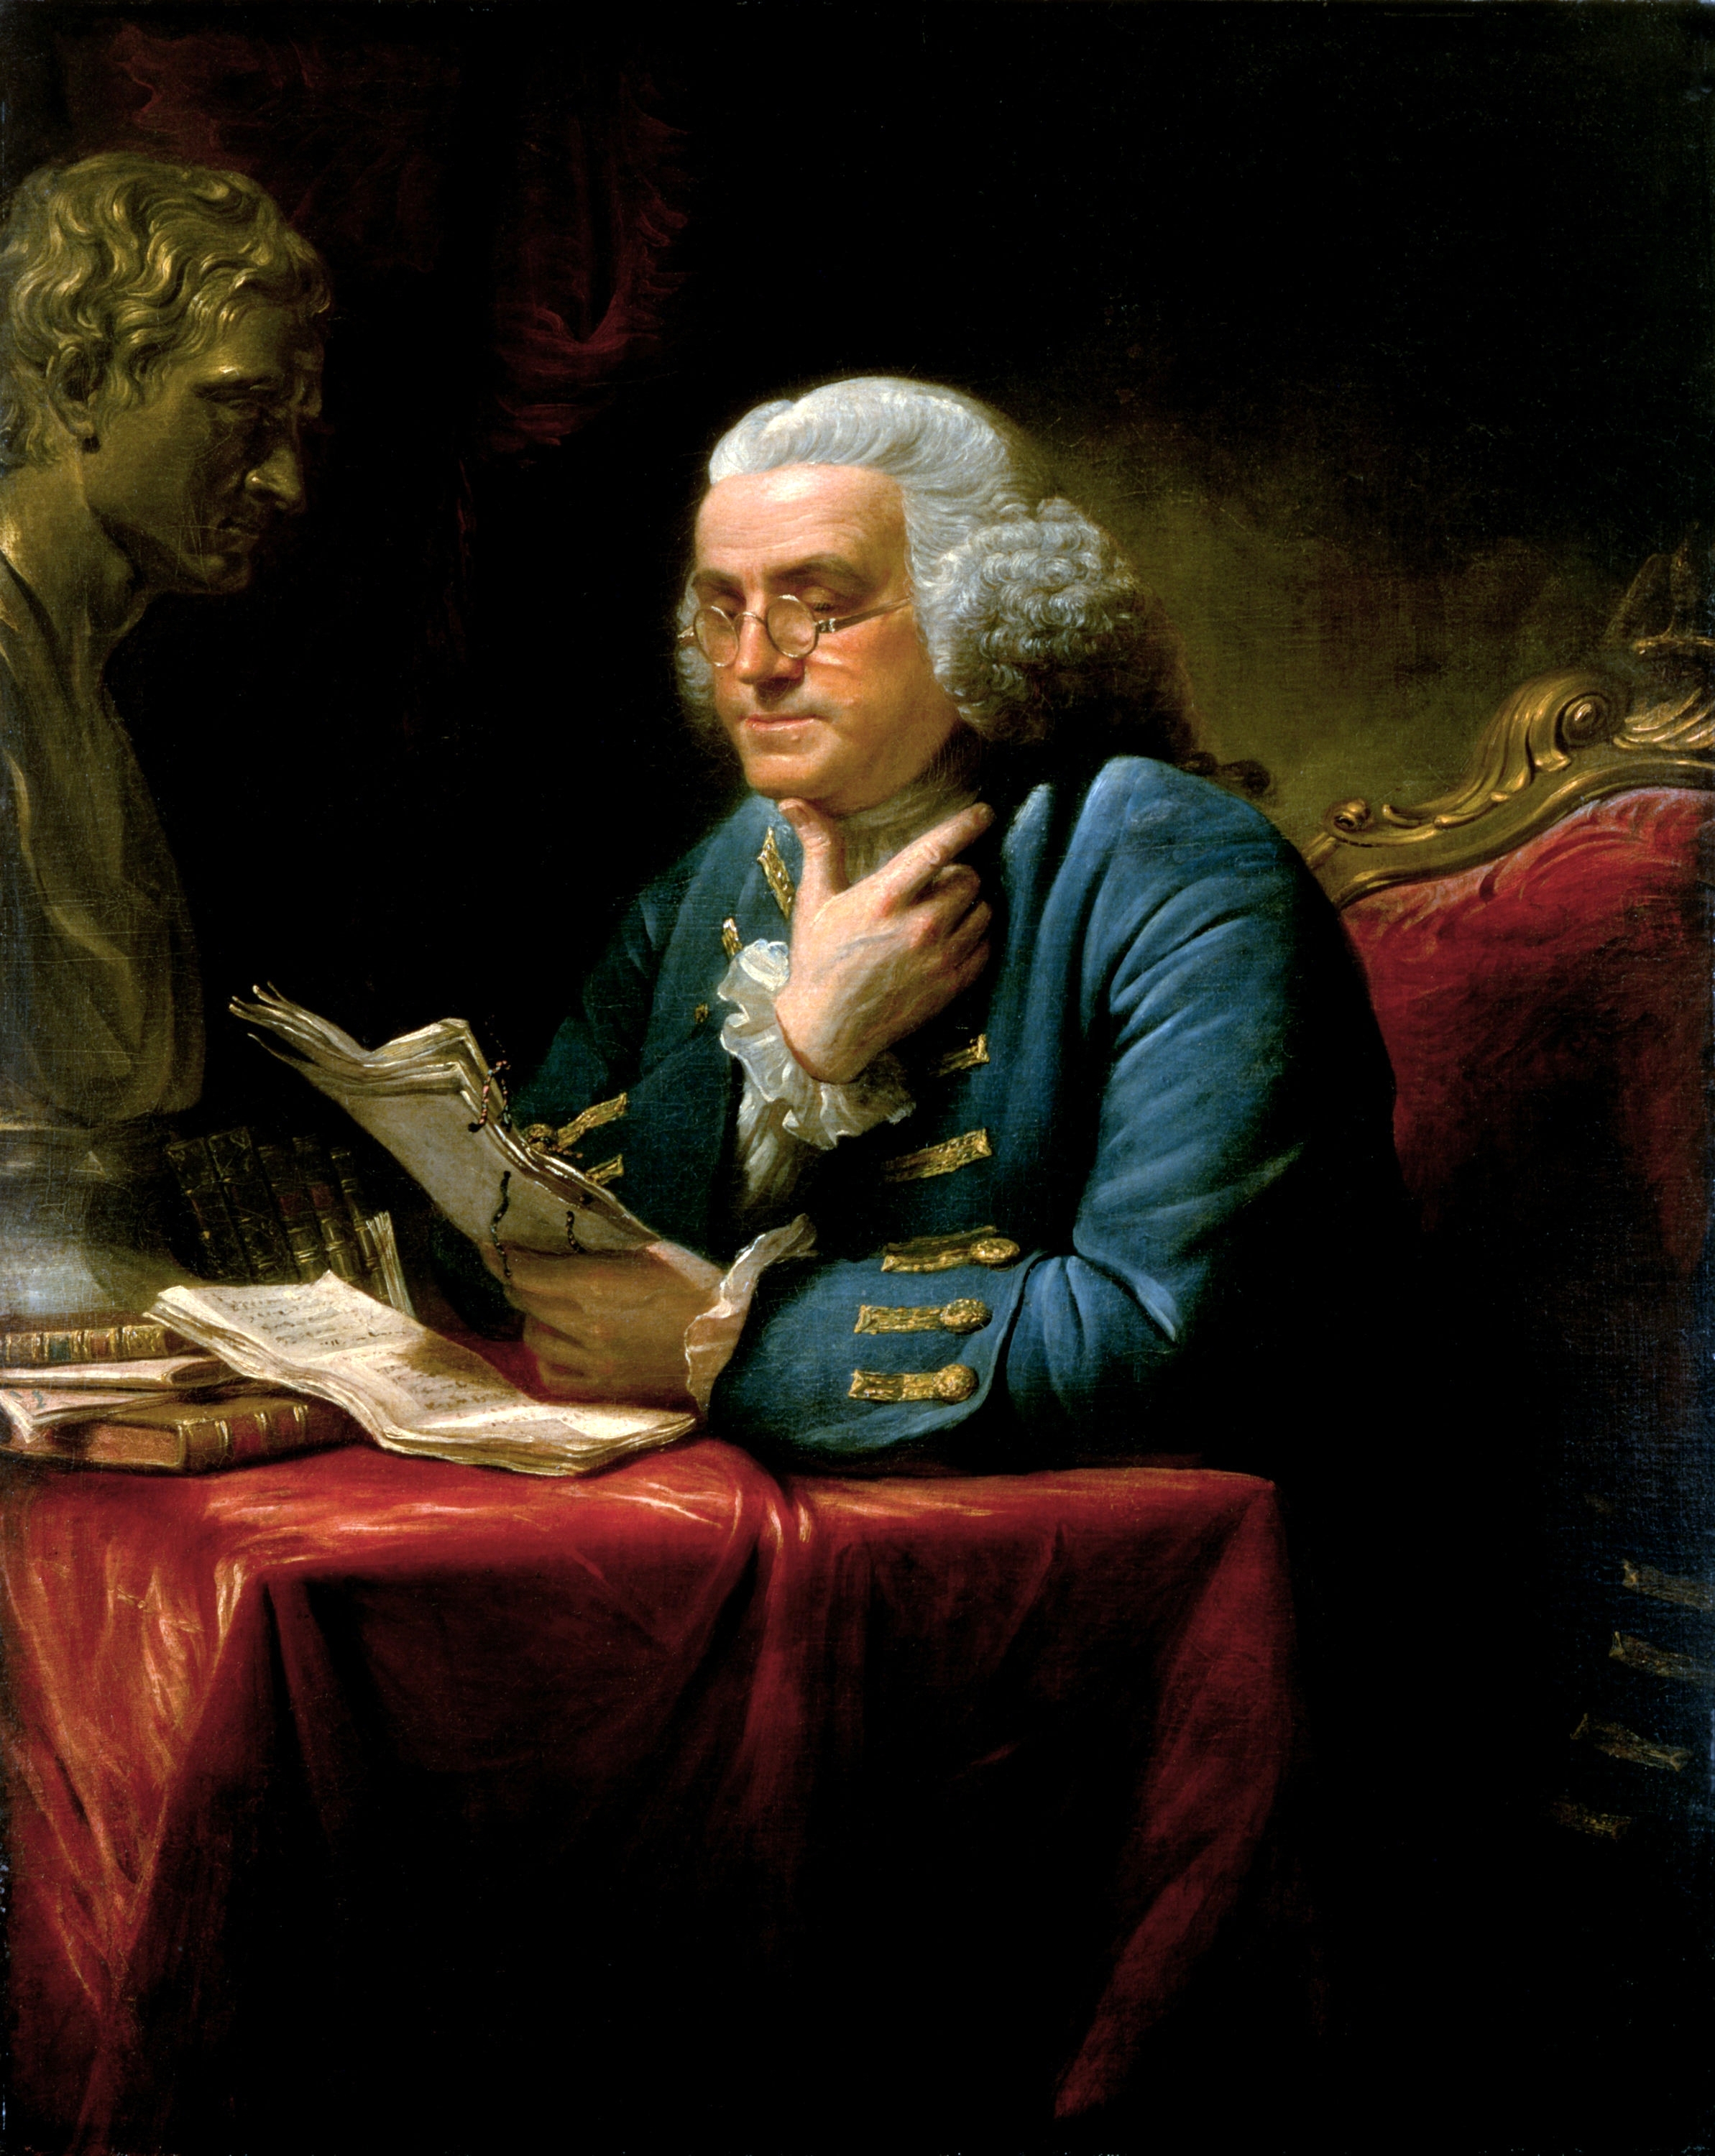 white house floor1 green roomjpg. Benjamin Franklin 1767.jpg White House Floor1 Green Roomjpg